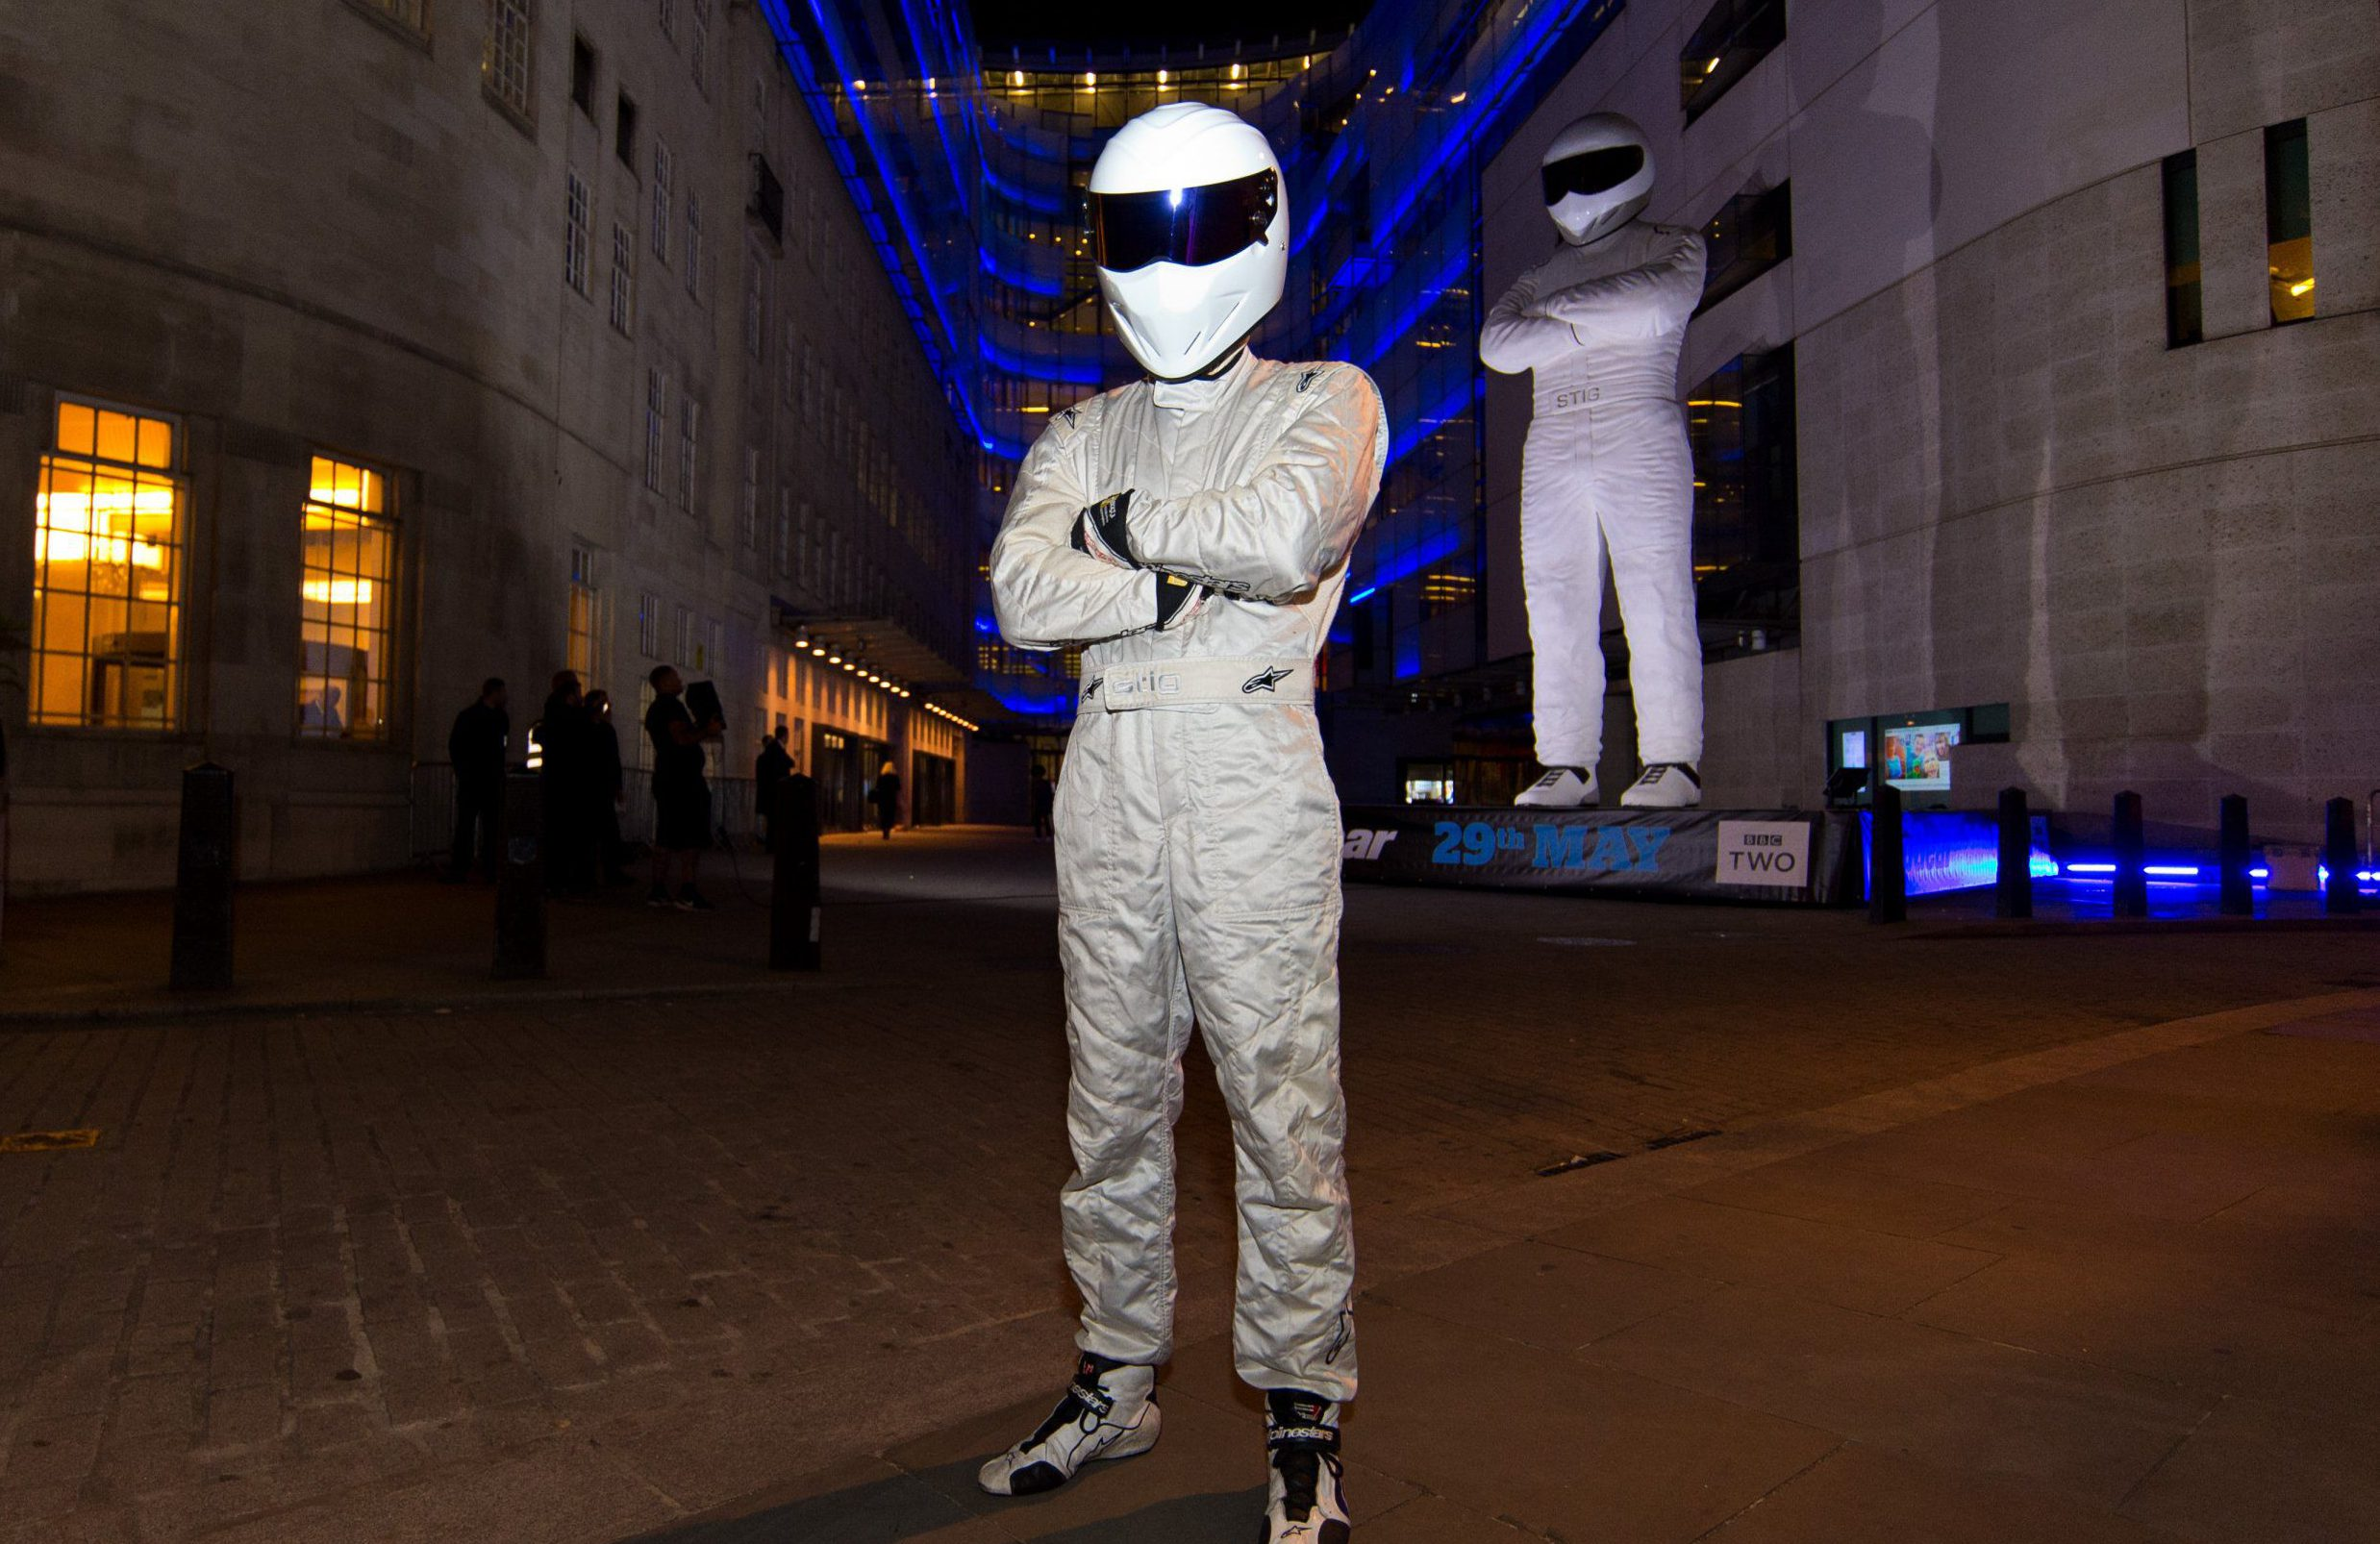 LONDON, ENGLAND - MAY 17: The Stig poses next to a giant statue of The Stig during a photocall to advertise the new series of the BBC's Top Gear programme at BBC Broadcasting House on May 17, 2016 in London, England. Photo by Ben A. Pruchnie/Getty Images).